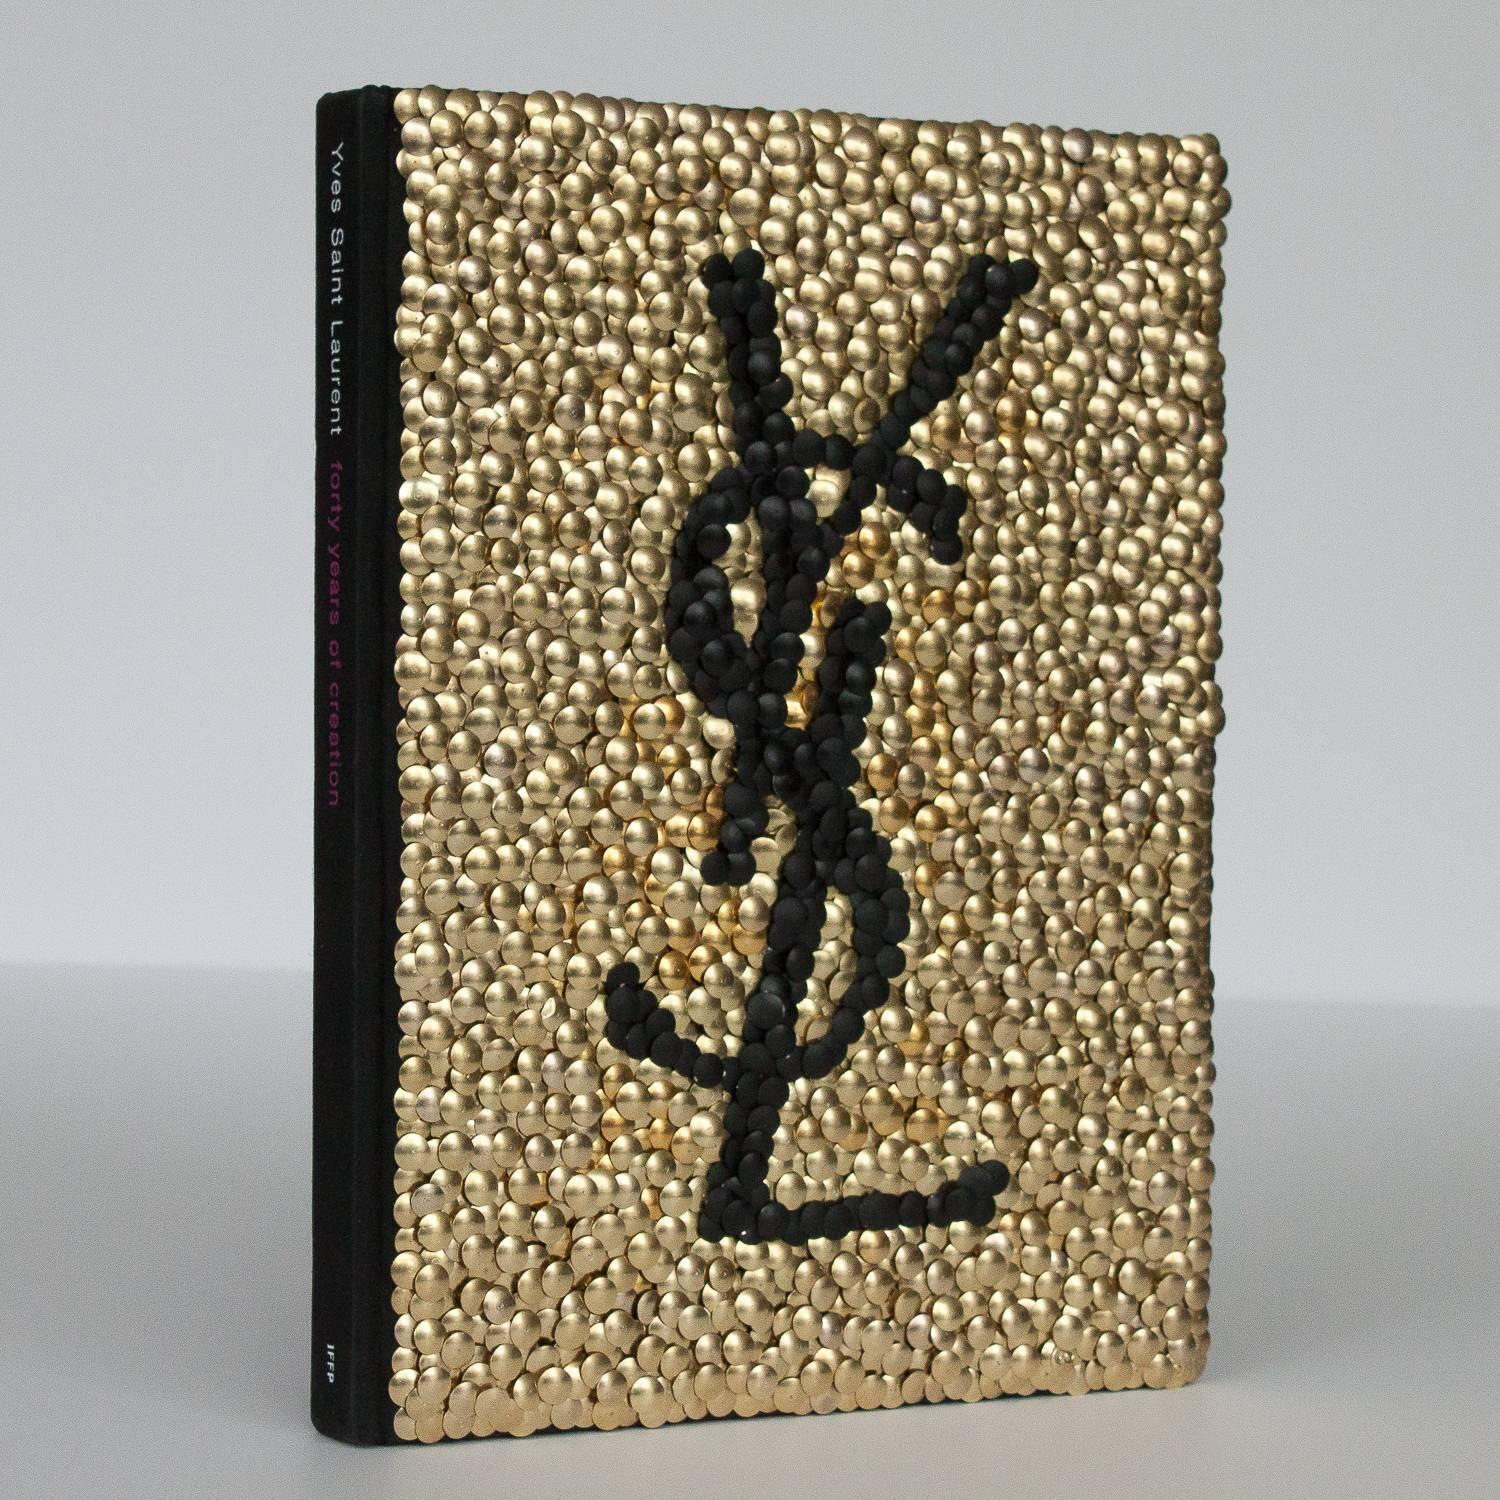 Brass Adorned Yves Saint Laurent Fashion Book By Brian